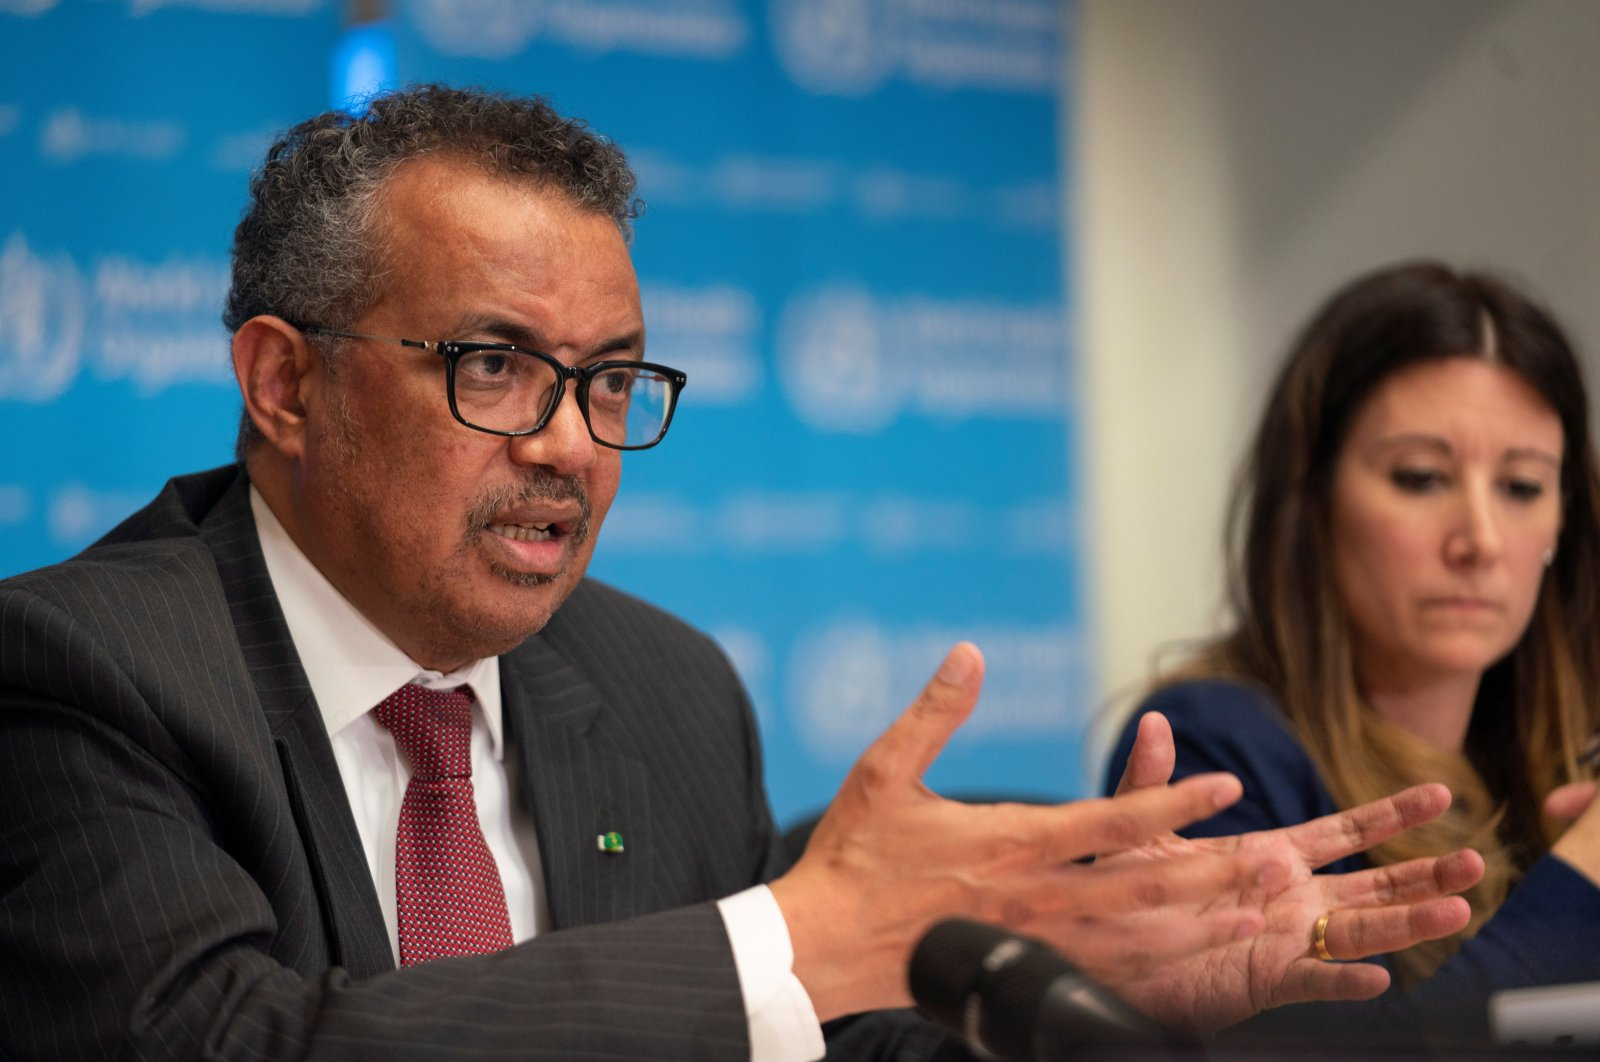 Director-General of World Health Organization (WHO) Tedros Adhanom Ghebreyesus attends a news conference on the outbreak of the coronavirus disease (COVID-19) in Geneva, Switzerland, March 16, 2020. (Reuters Photo)